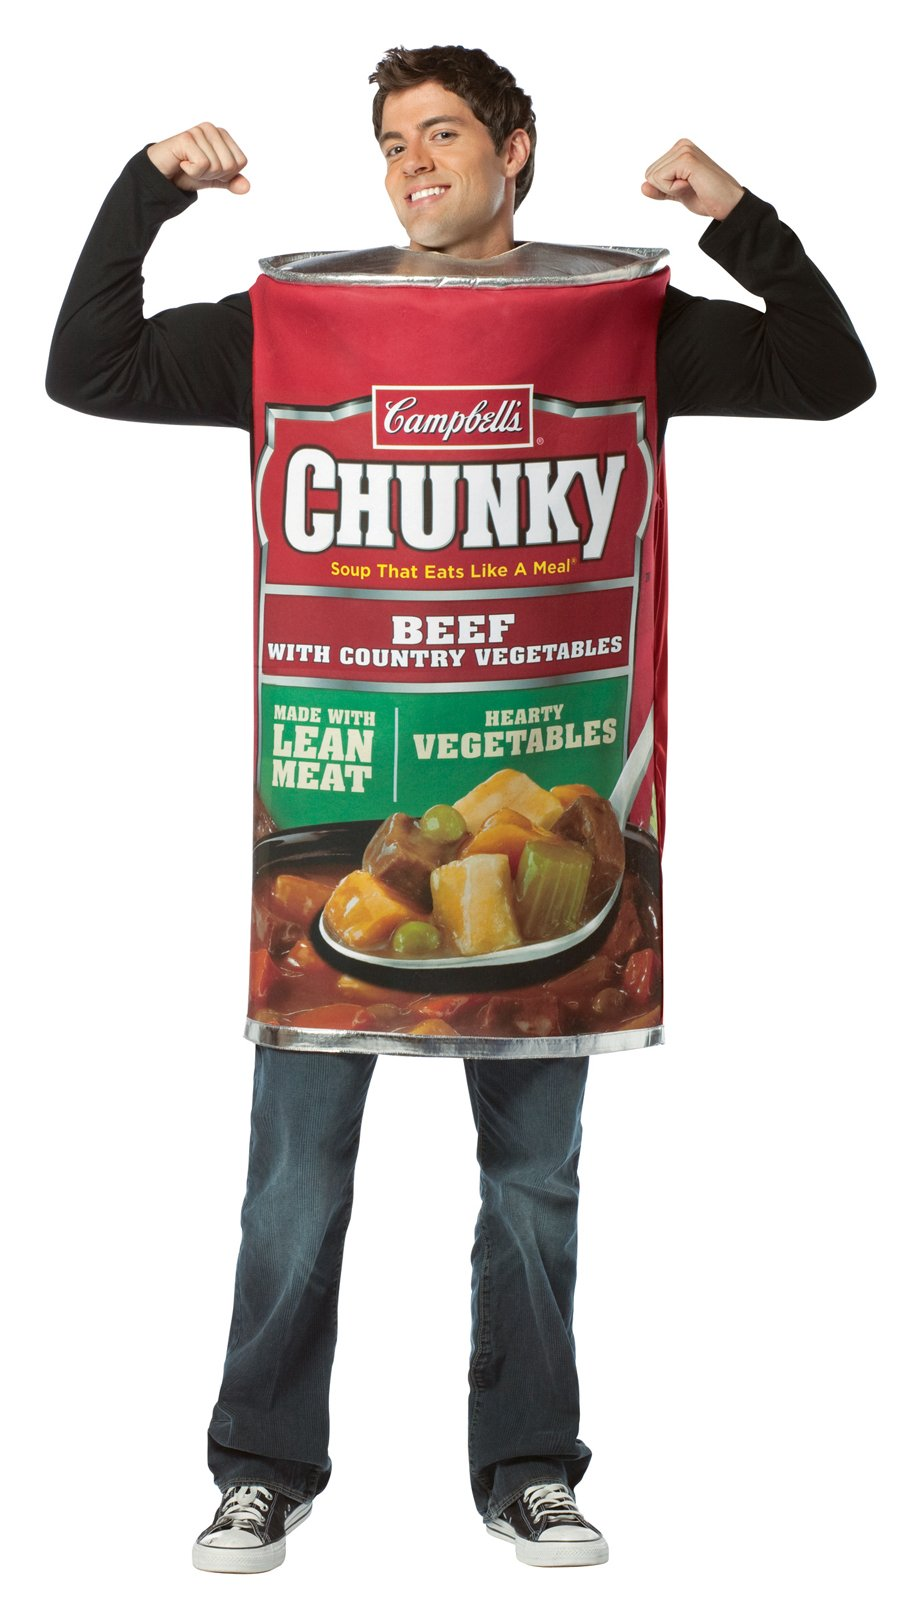 Cambell's Chunky Soup Adult Costume